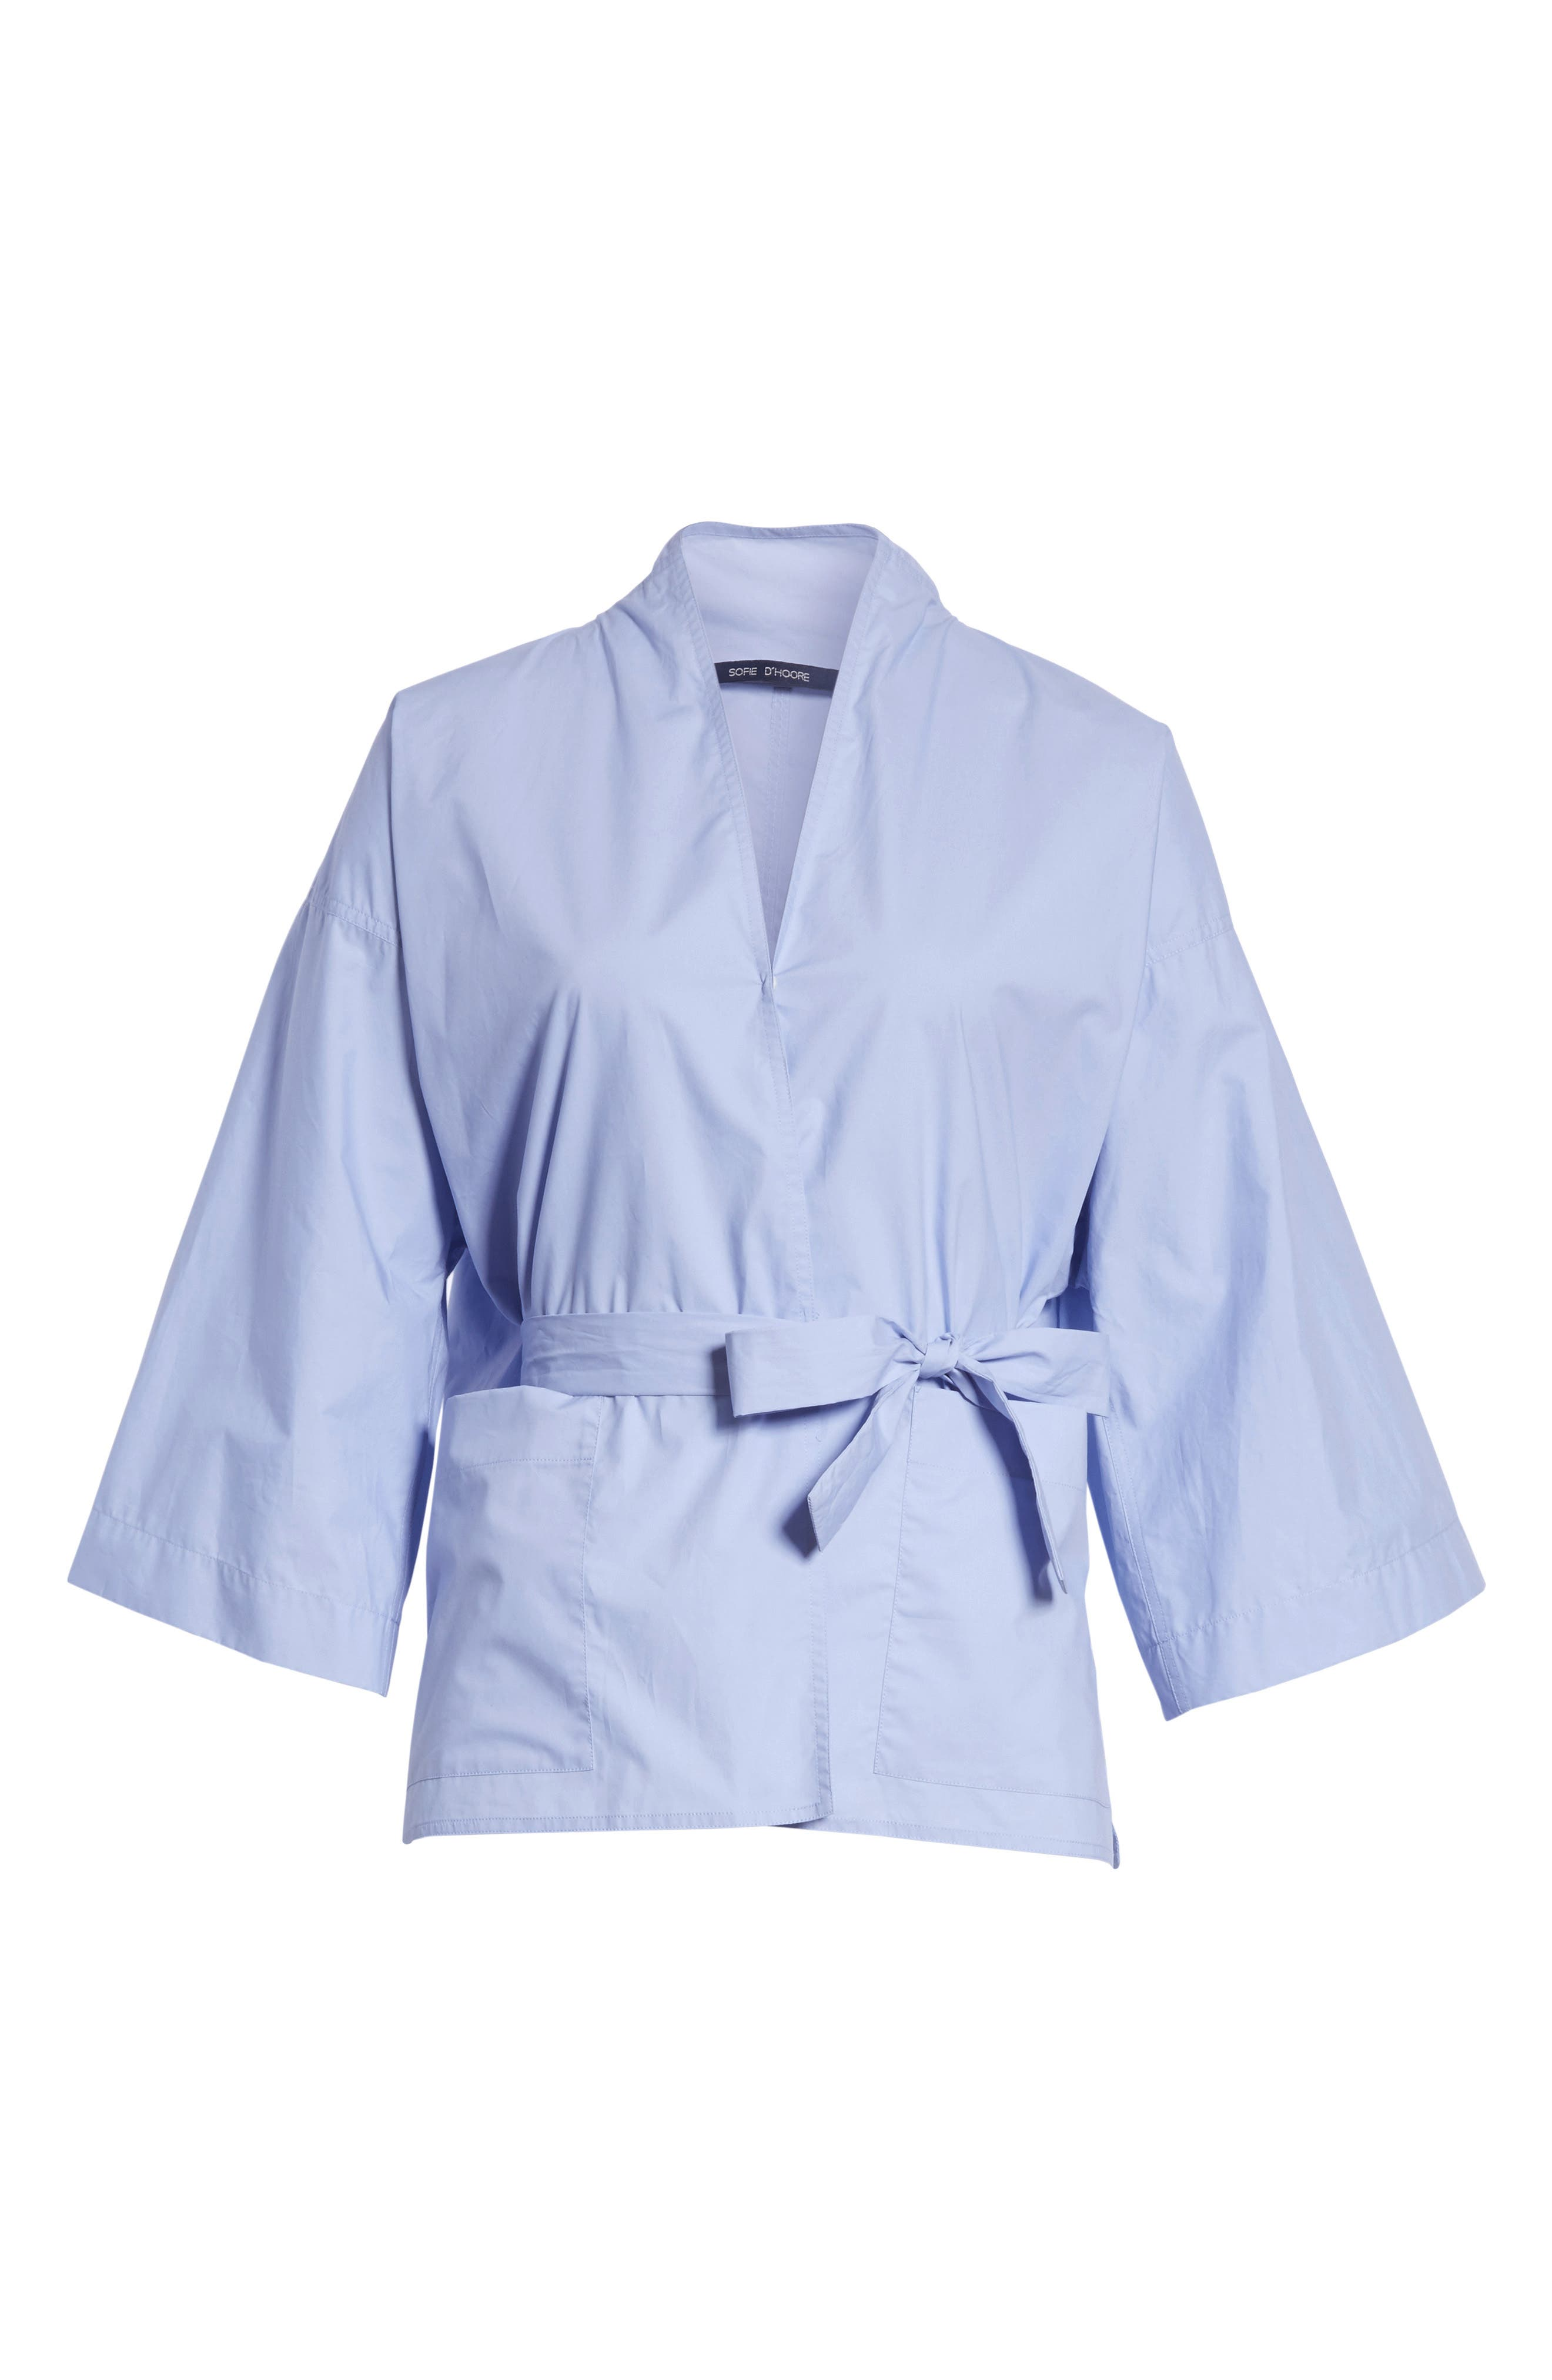 Belted Blouse,                             Alternate thumbnail 6, color,                             400